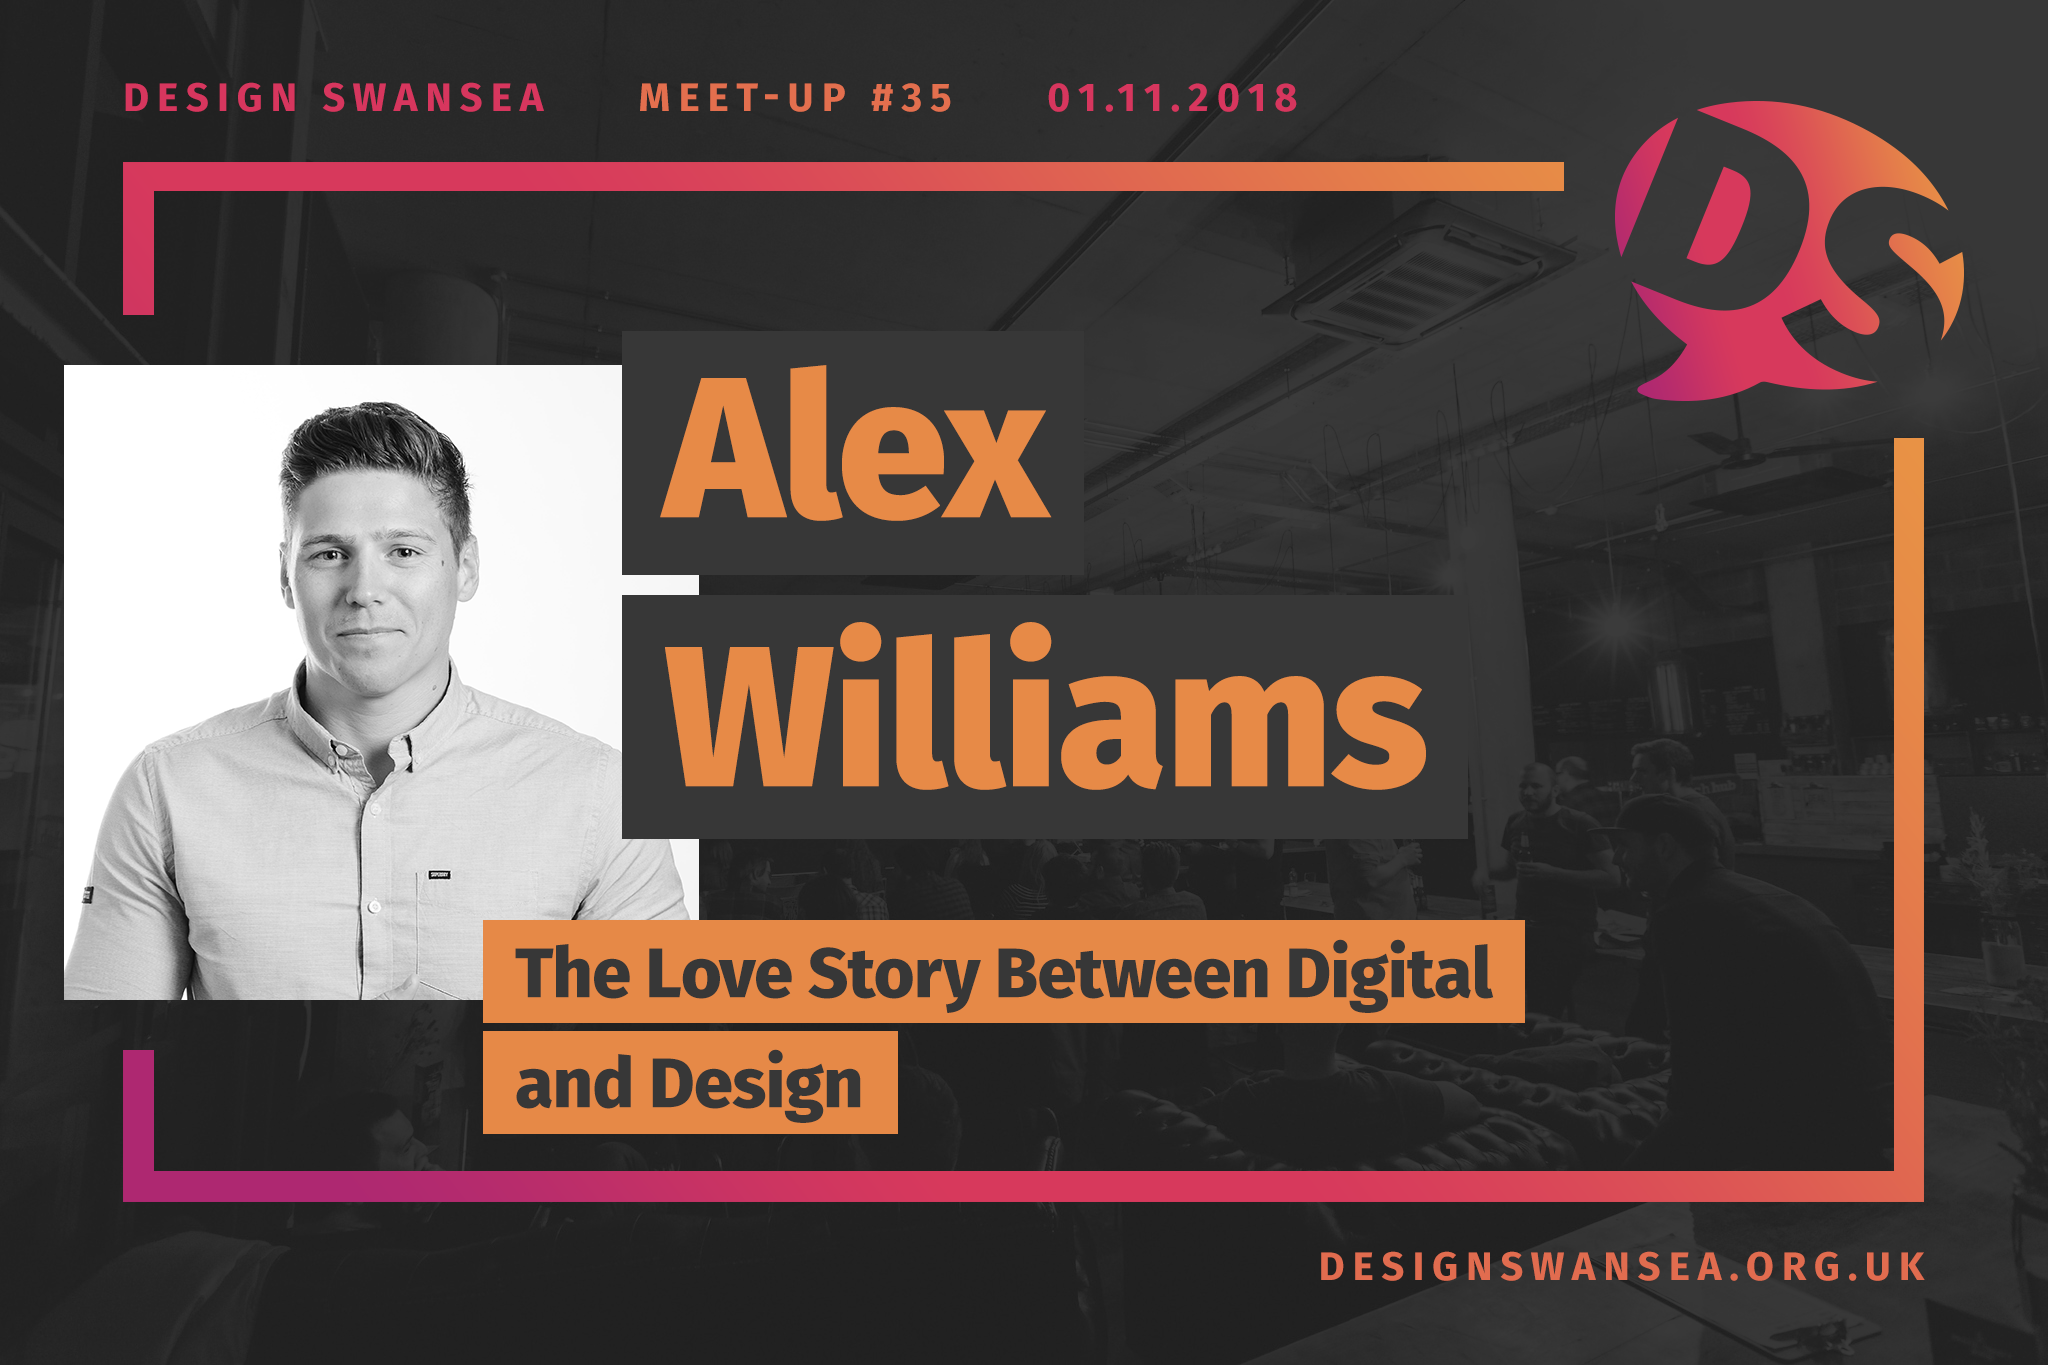 Alex Williams will be talking about the love story between digital and design.